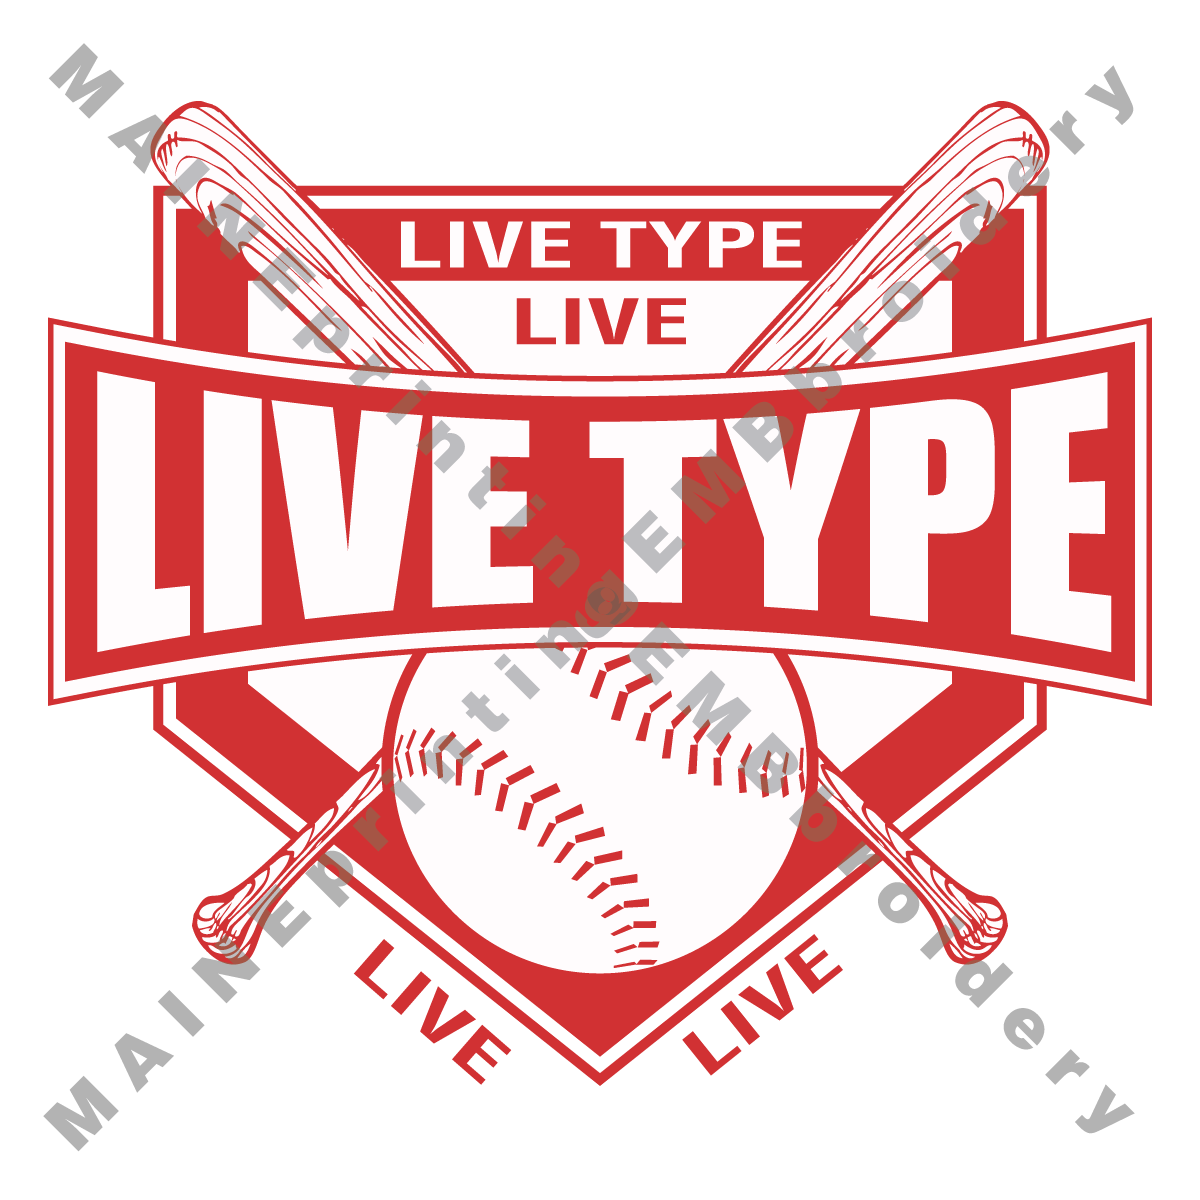 baseball shirt design tshirt designs - Baseball T Shirt Designs Ideas